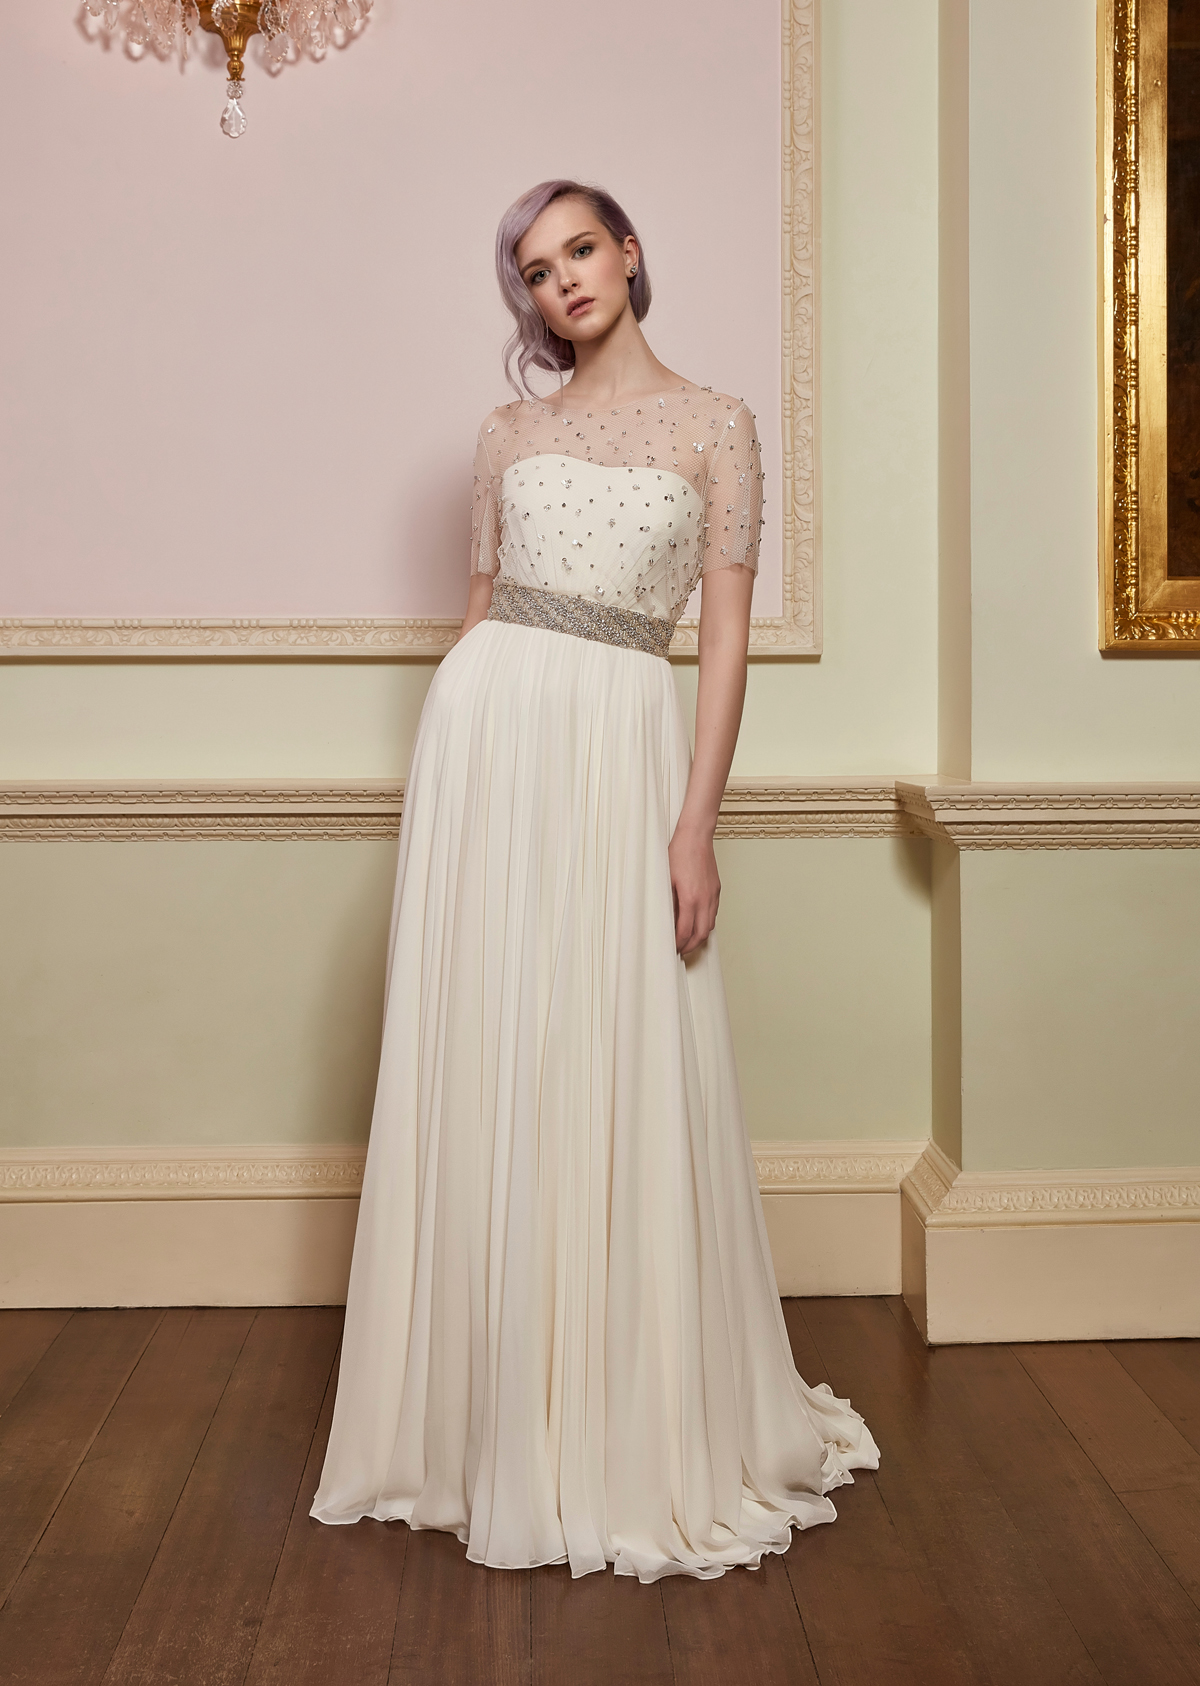 2c31f96d3df An Exclusive Discount At The Jenny Packham London Flagship Store ...